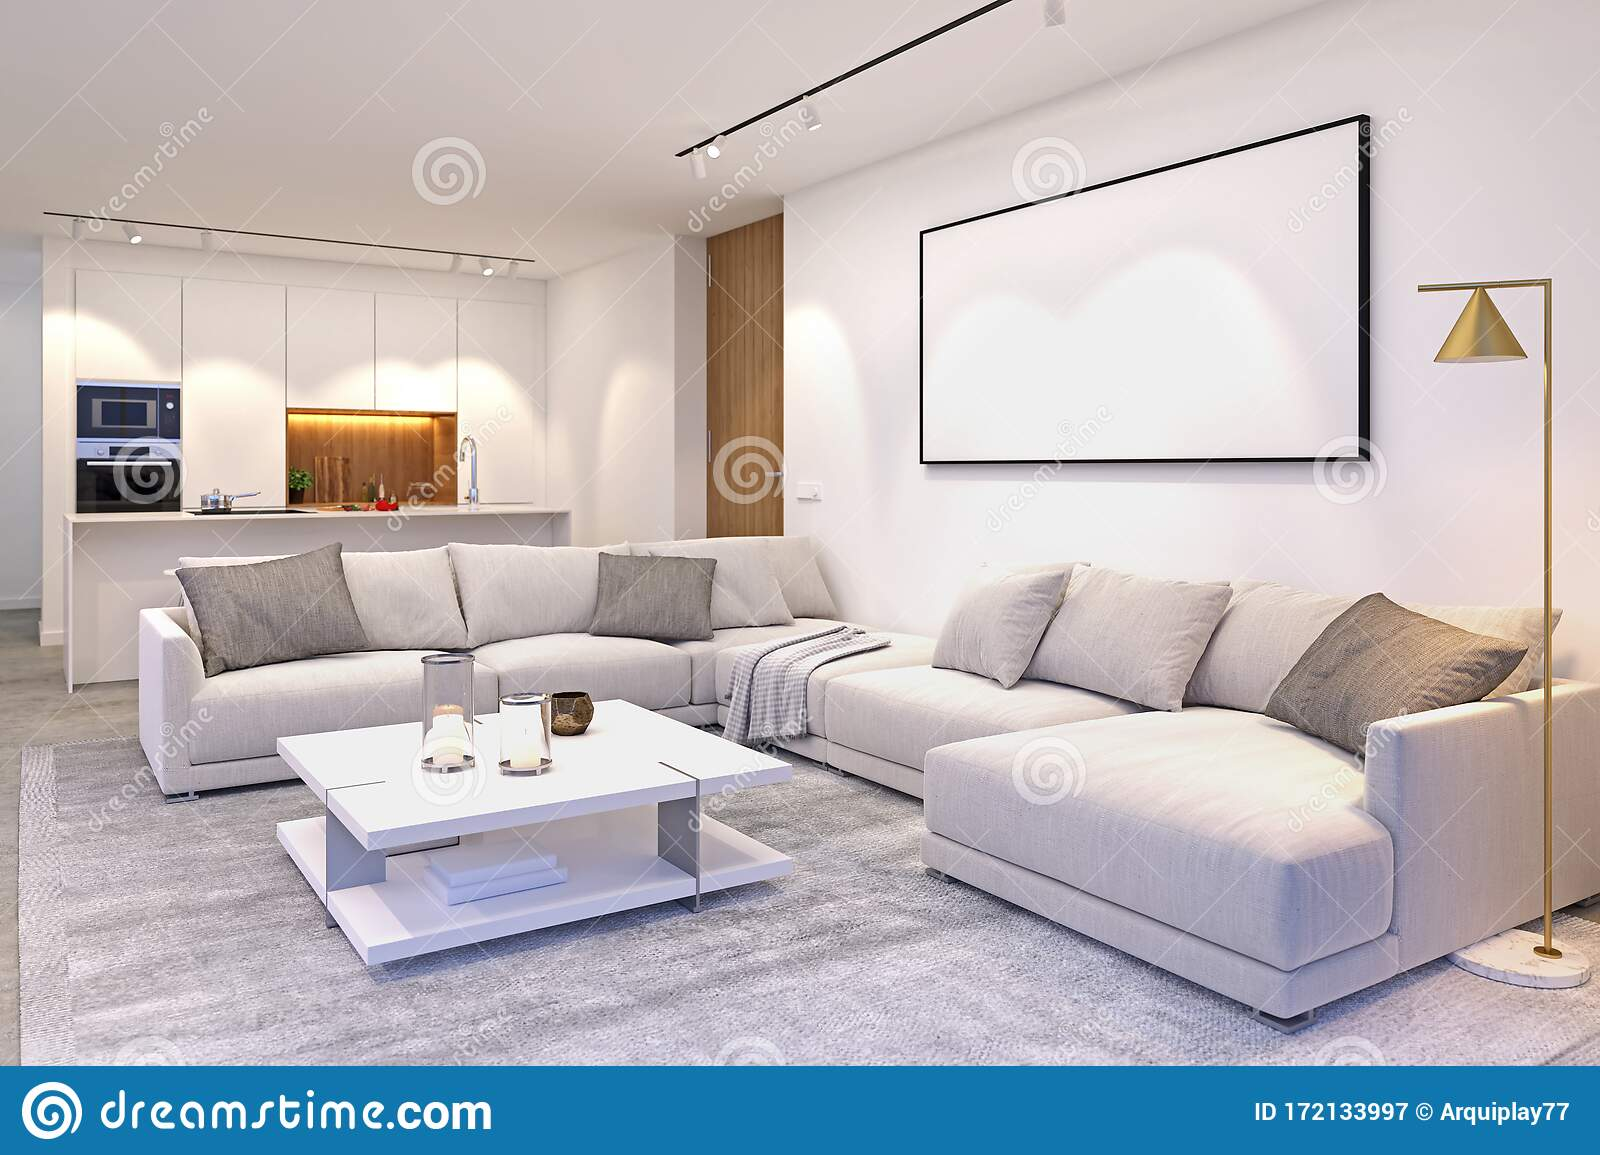 Interior Scene Of Modern House Space Integrating Living Room And Kitchen In Grey And White Colours Showing Big Couch Table Rug Stock Illustration Illustration Of Kitchen Lifestyle 172133997